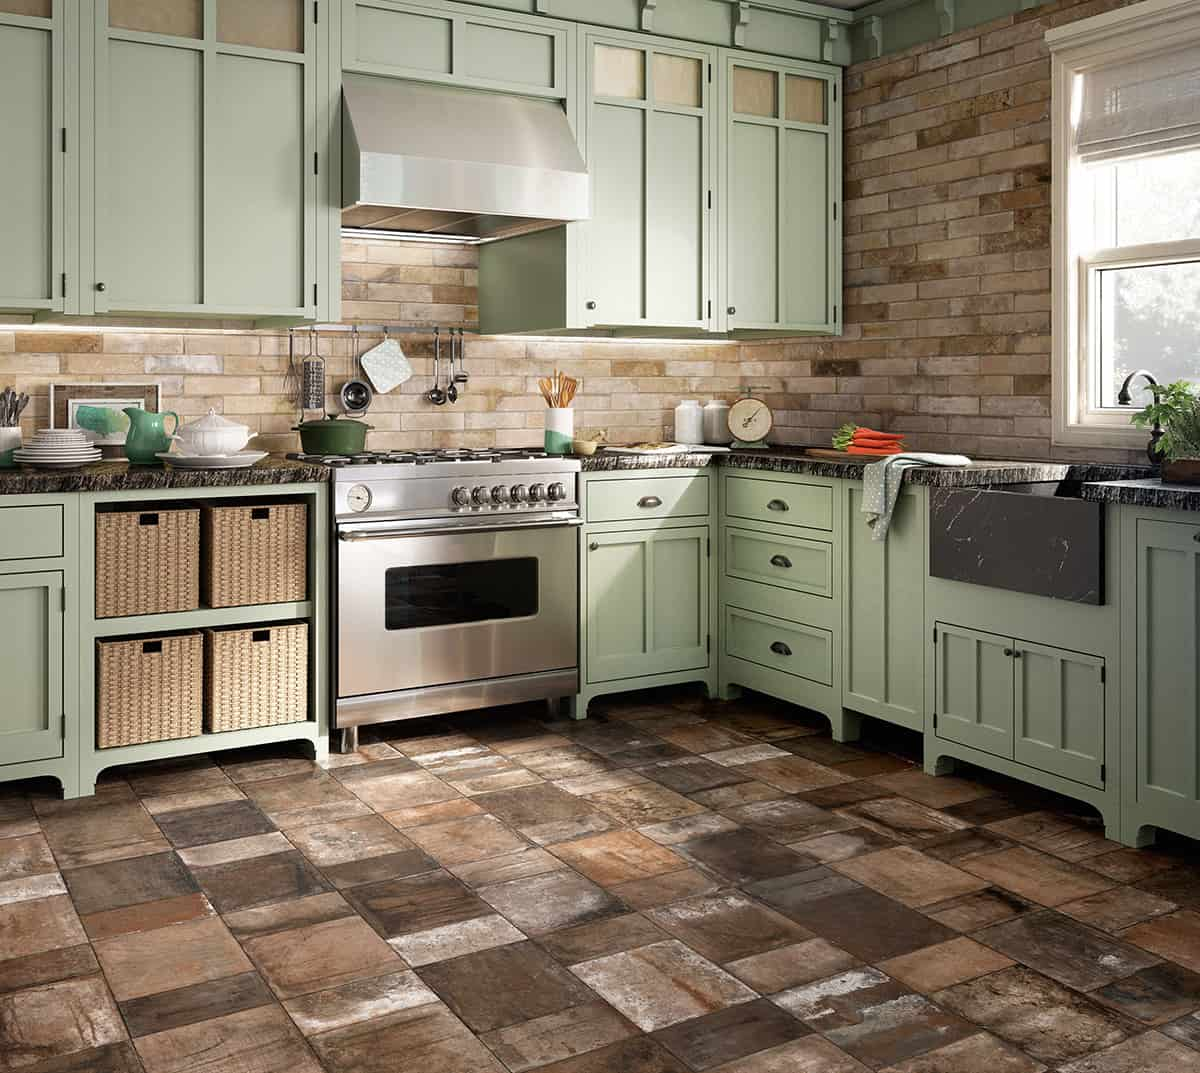 Flooring Design For Kitchen: 25 Beautiful Tile Flooring Ideas For Living Room, Kitchen